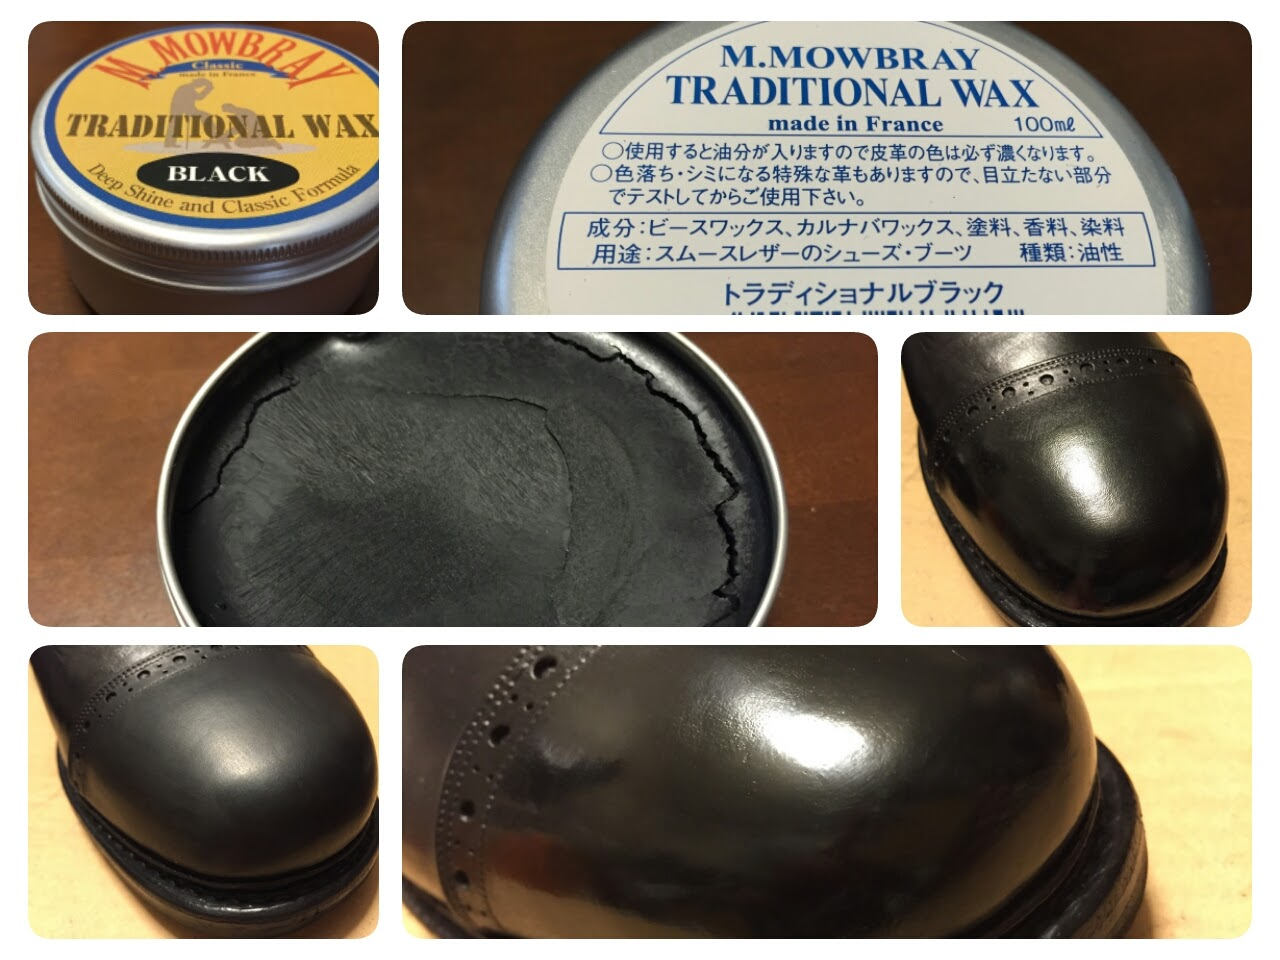 1025-201509_Traditional Wax